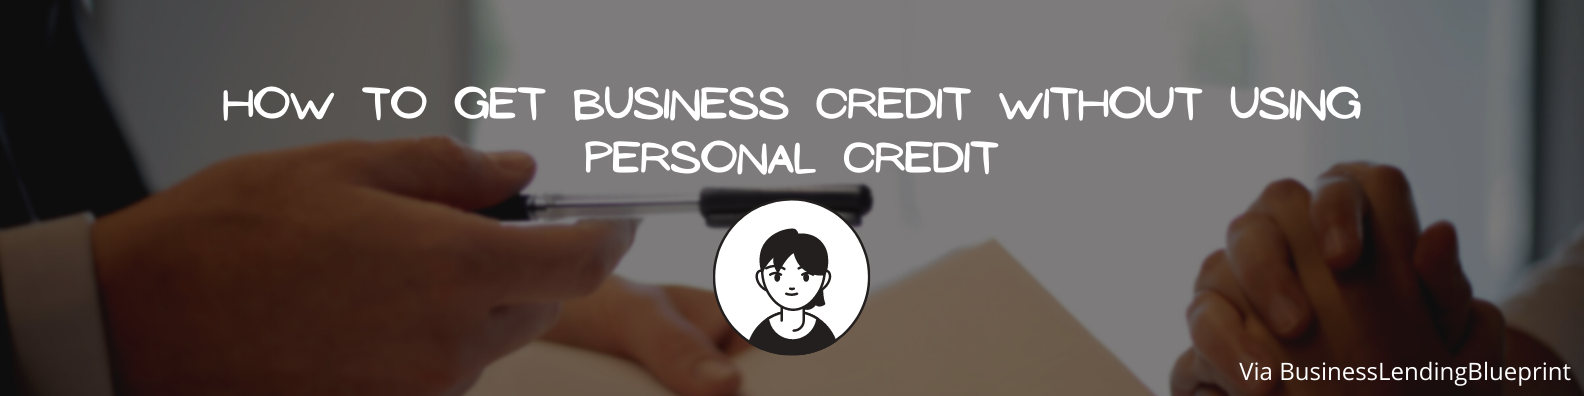 How To Get Business Credit Without Using Personal Credit graphic